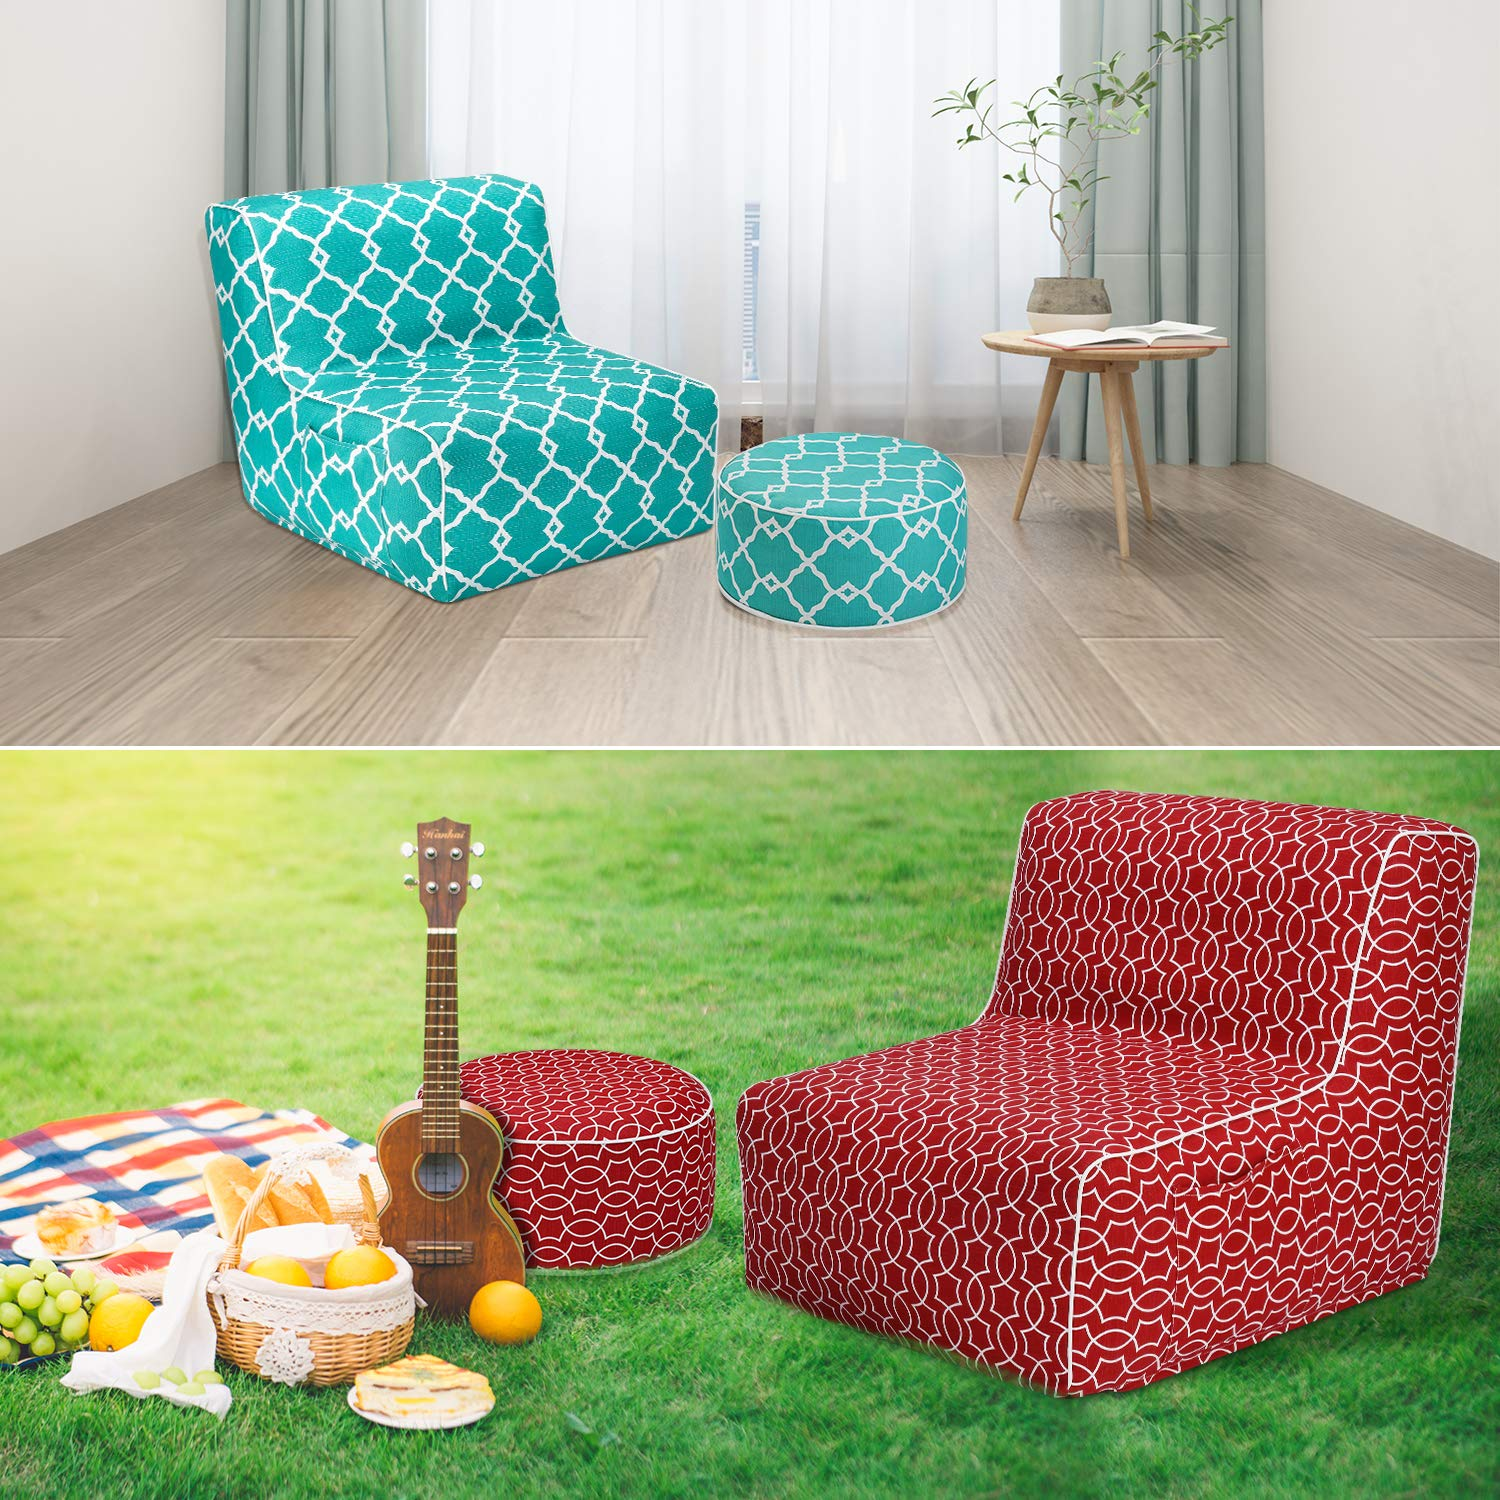 Flower Inflatable Ottoman footrest Stool with Portable air Pump and Storage Bag or Pouch Used for Outdoor or Indoor Travel Portable Camping Backyard Patio Garden Home Yoga footrest Stool